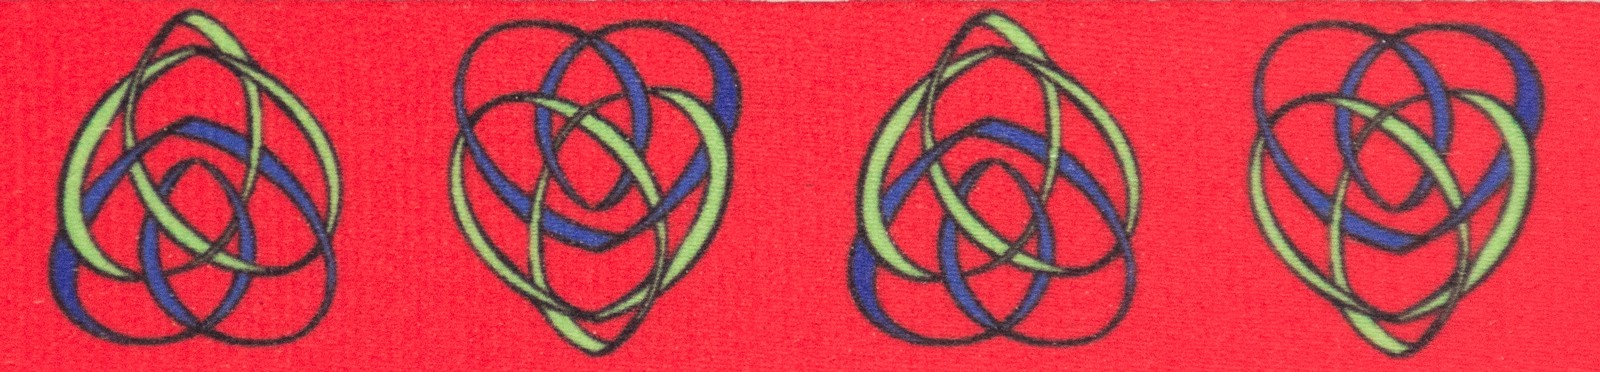 Buy 1 2 Inch Celtic Motherhood Knot Photo Quality Polyester Online